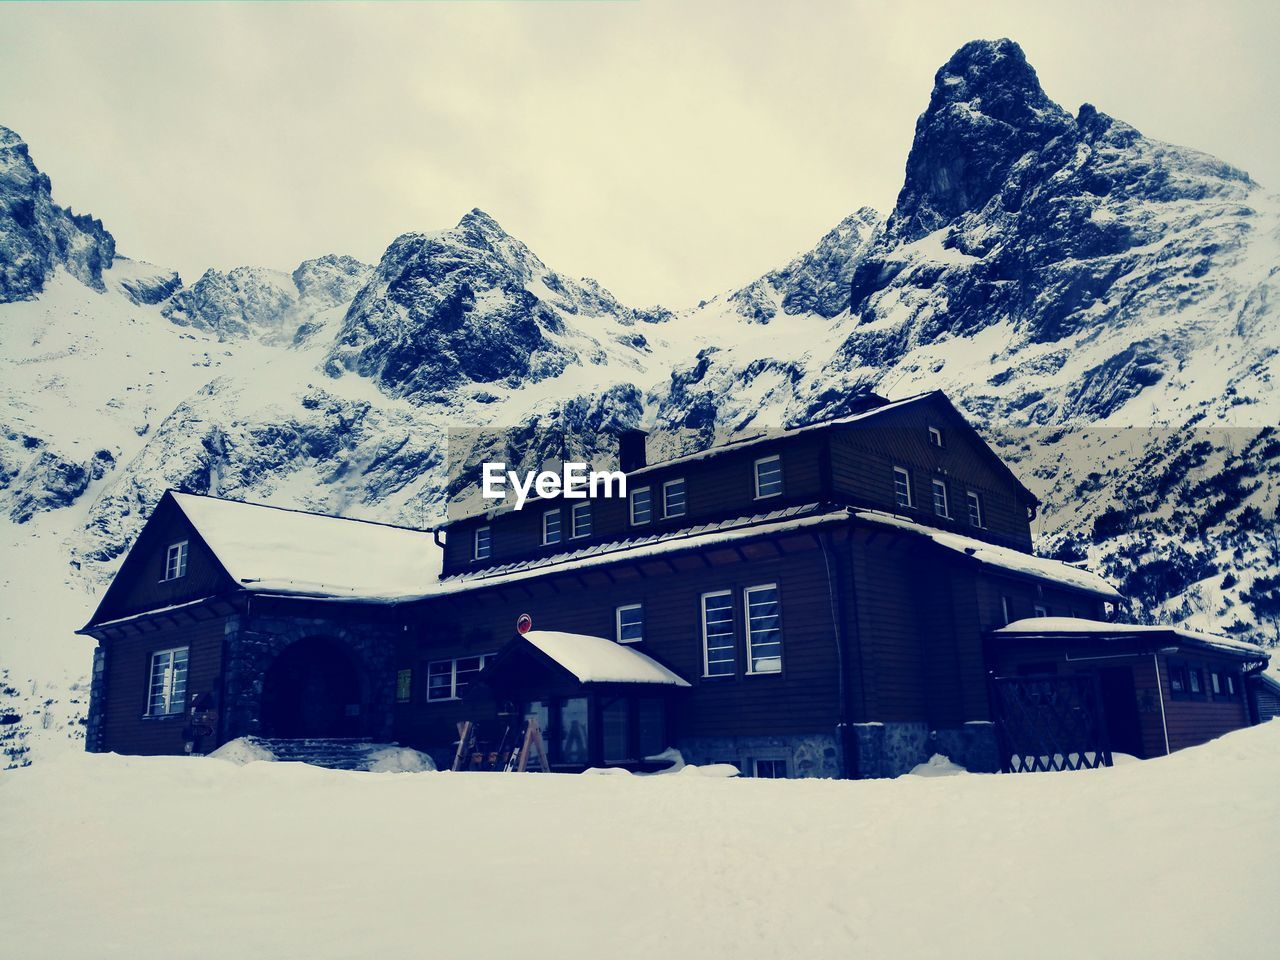 SNOW COVERED HOUSES AGAINST MOUNTAIN RANGE